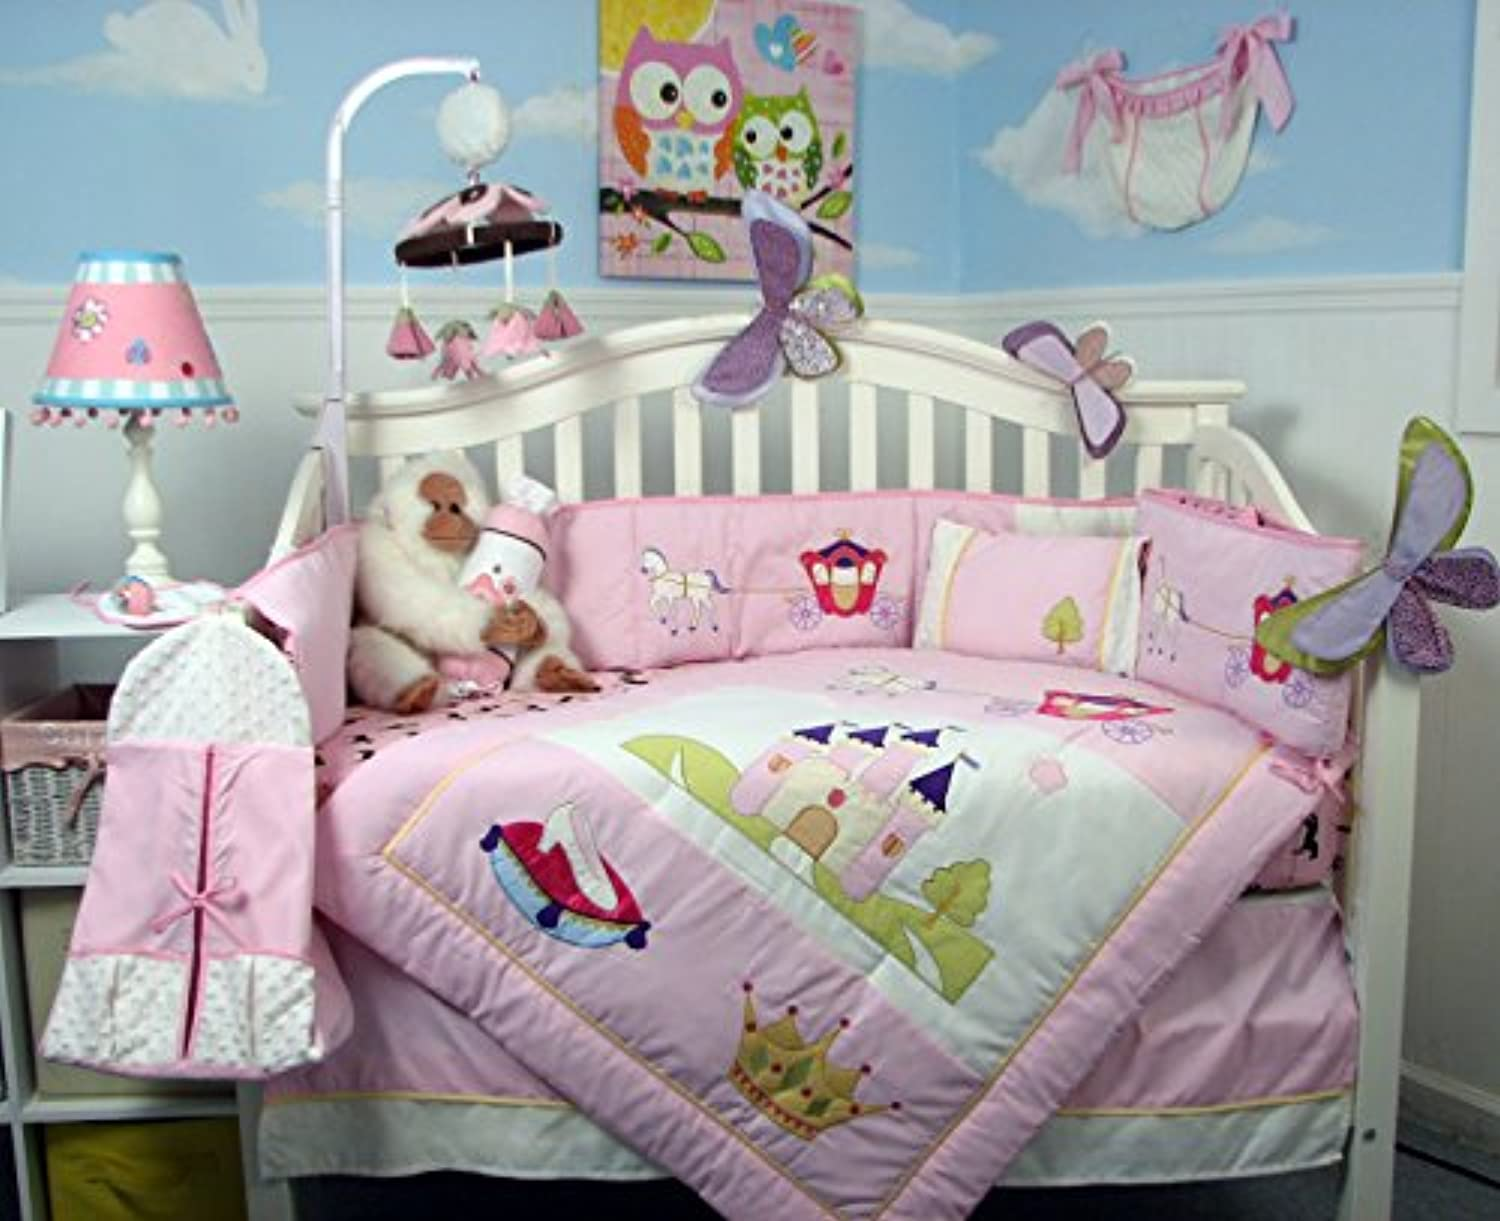 Boutique Royal Princess Baby 14 Piece Crib Bedding Set by SoHo Designs